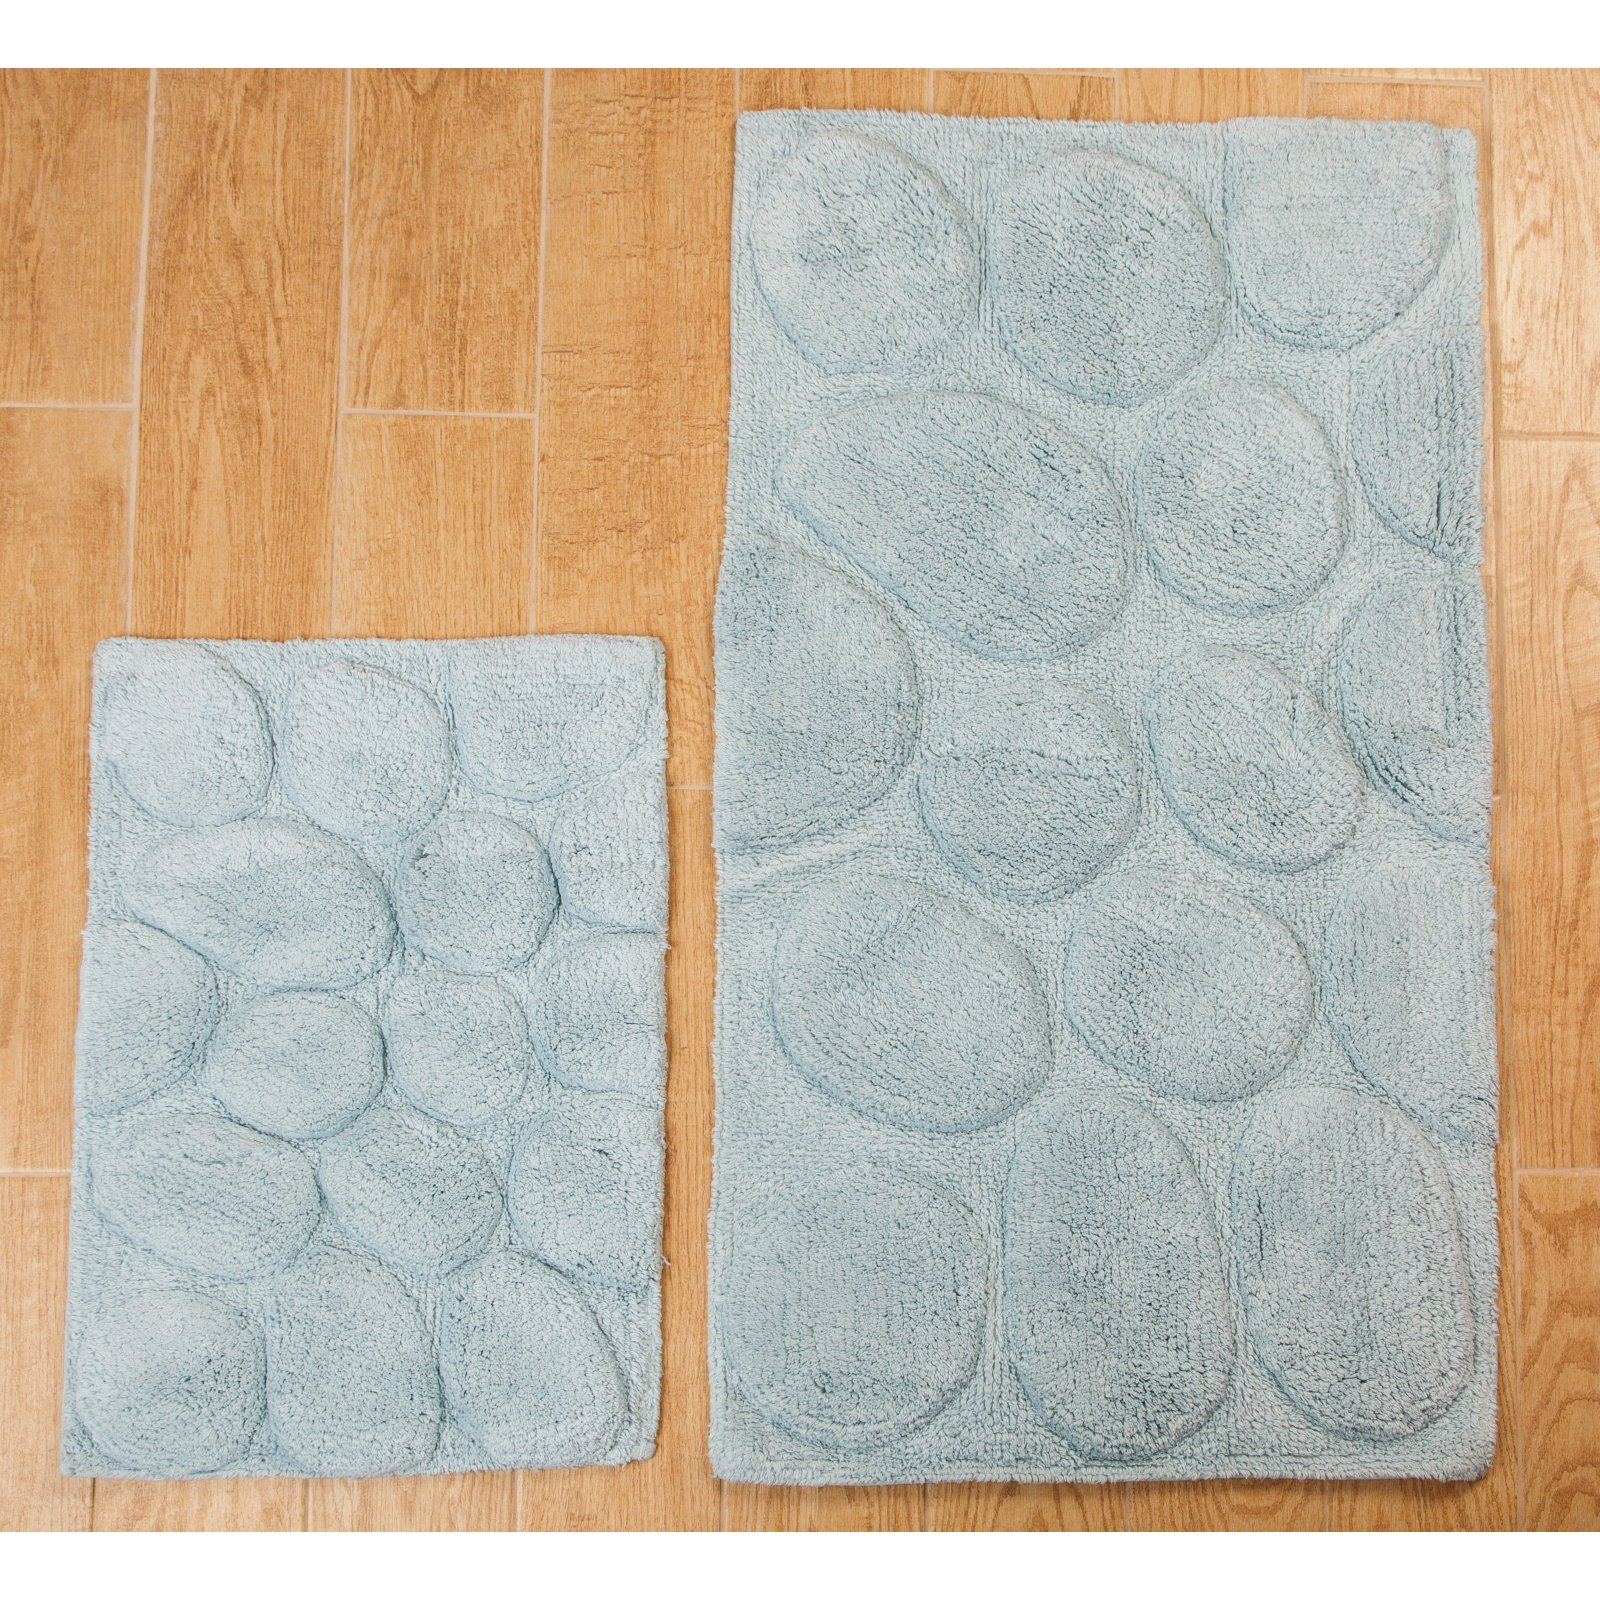 Elegance Collection Palm Bath Rug - Set of 2